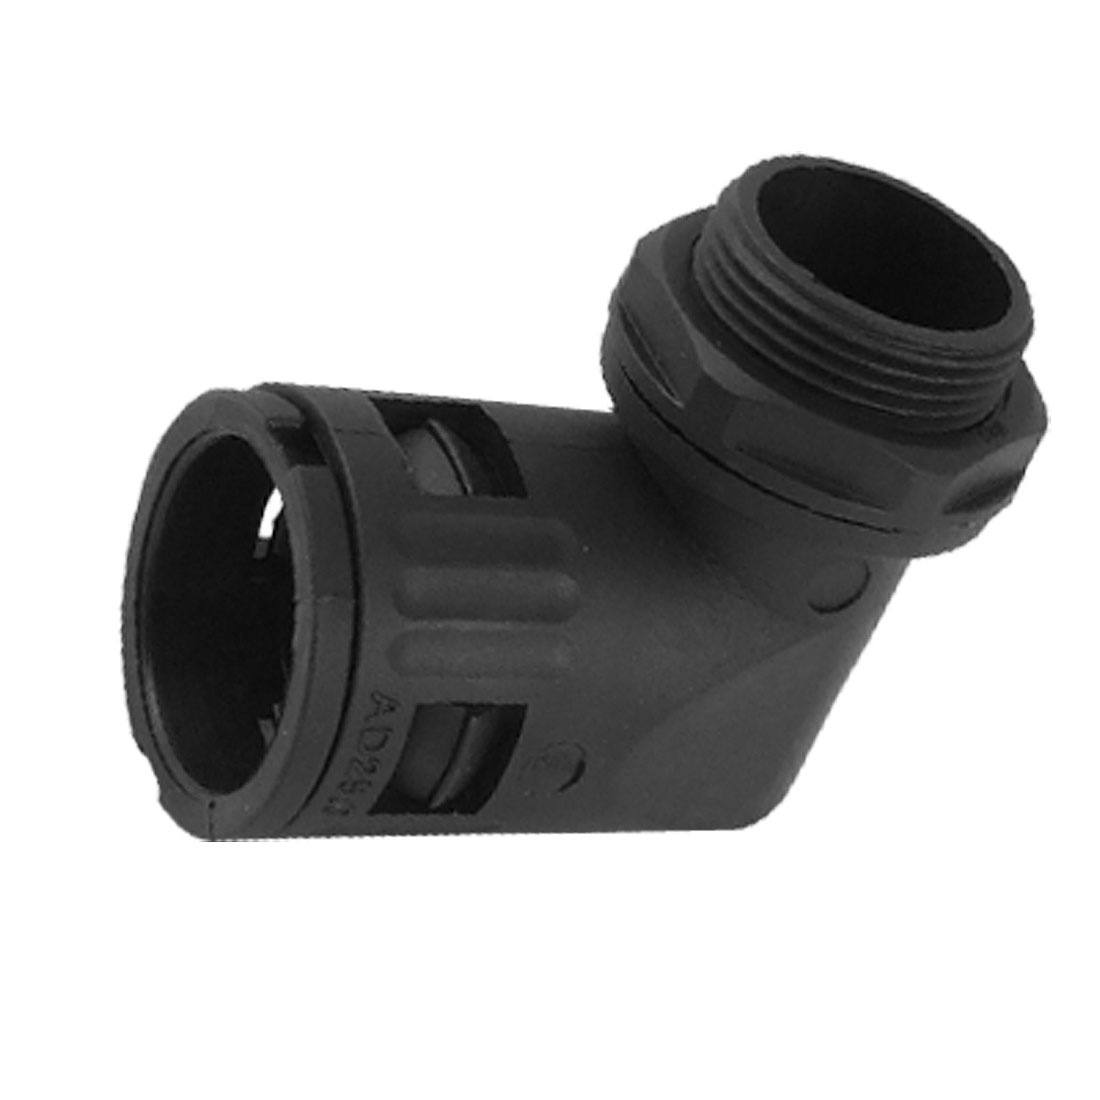 Black Plastic 24.5mm Male Thread Flexible Conduit Pipe Elbow Quick Fittings